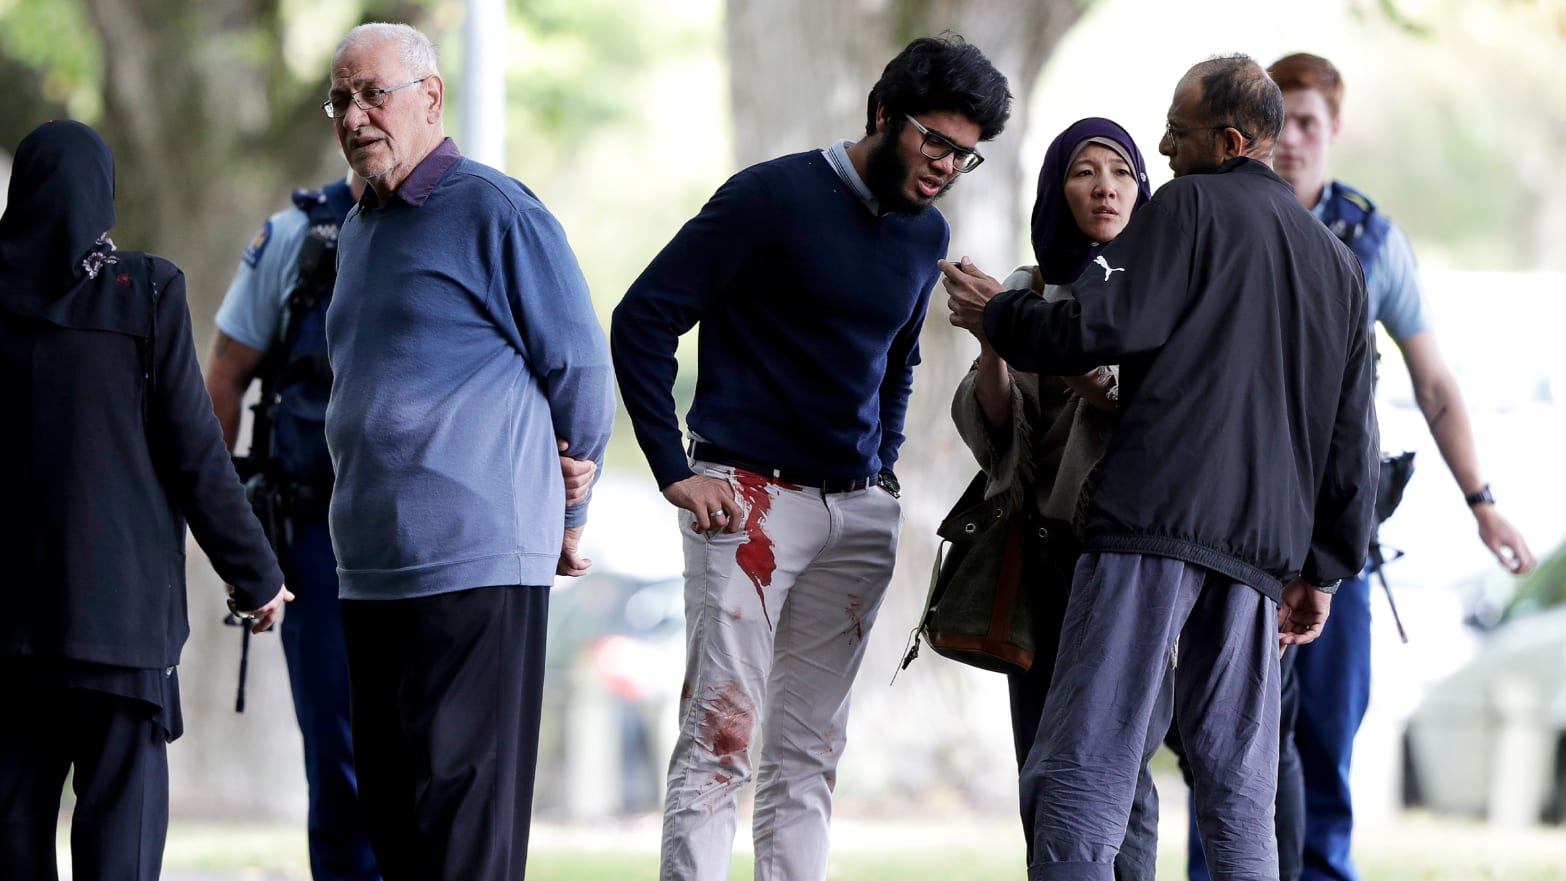 Nz Shooting Footage News: New Zealand Shooting Video At Christchurch Mosques: Attack